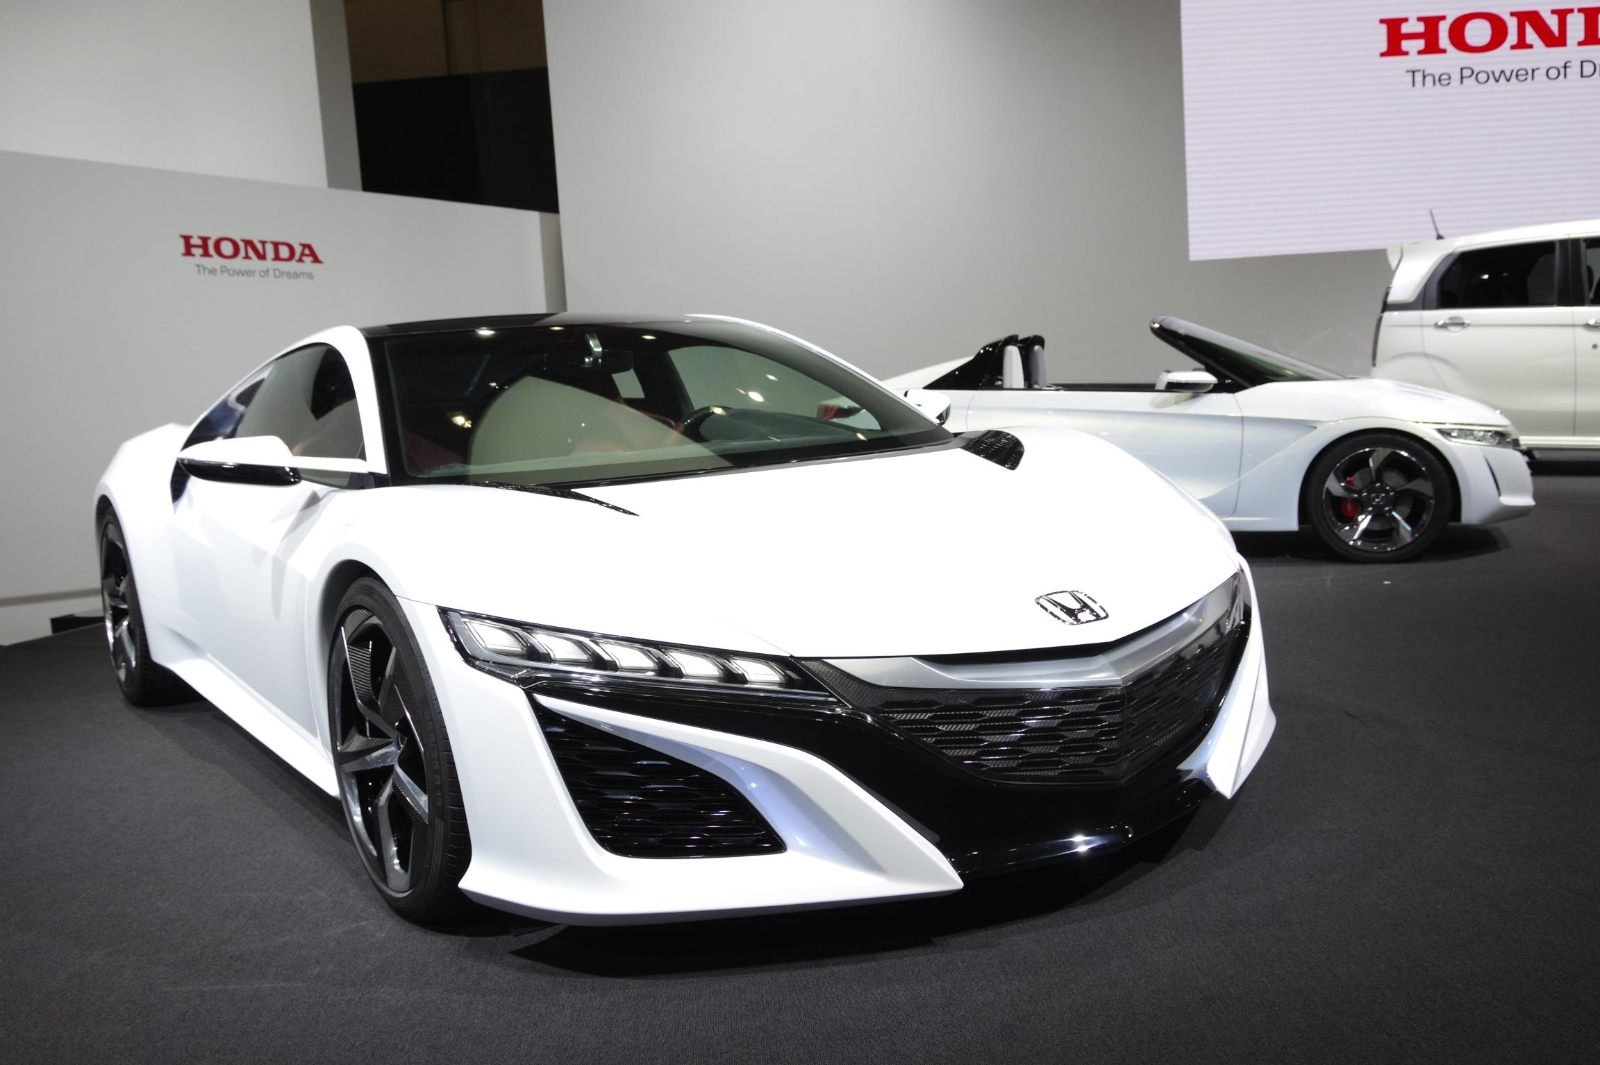 tokyo 2013 honda nsx concept in white live photos autoevolution. Black Bedroom Furniture Sets. Home Design Ideas